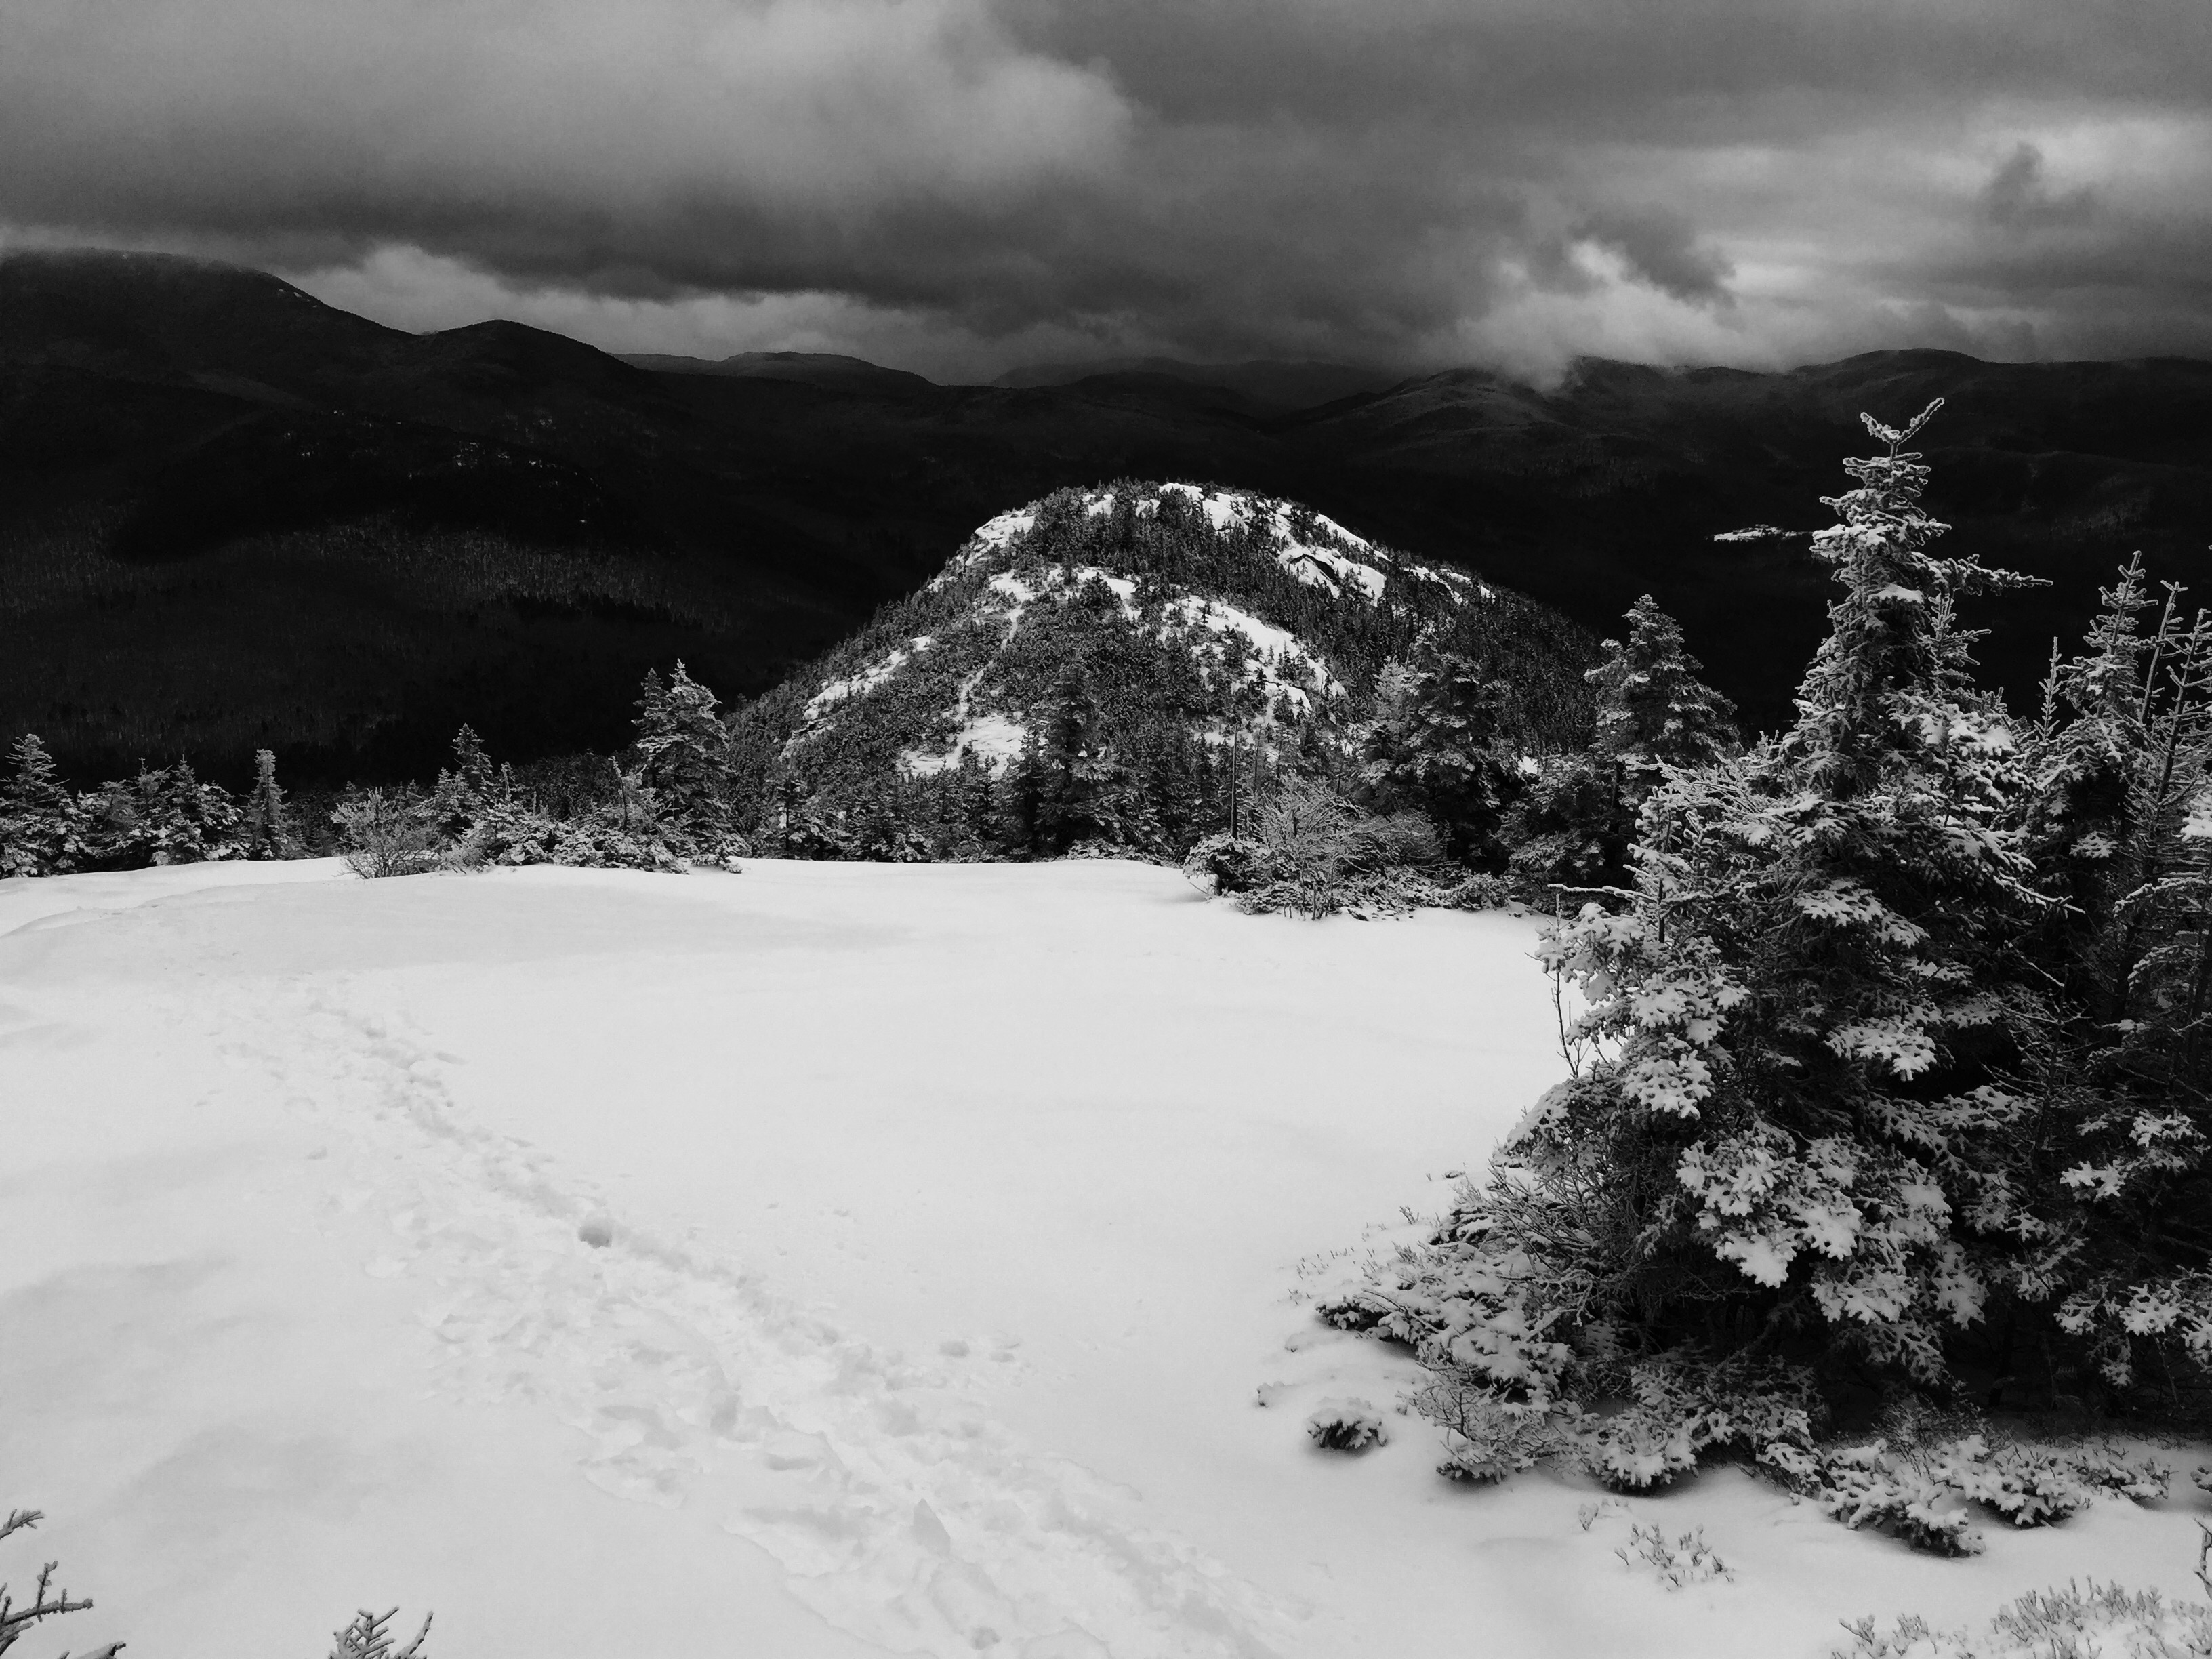 Caption: View of Welch Mountain from Dickey Mountain in Thornton, NH. , Credit: Sean Hurley